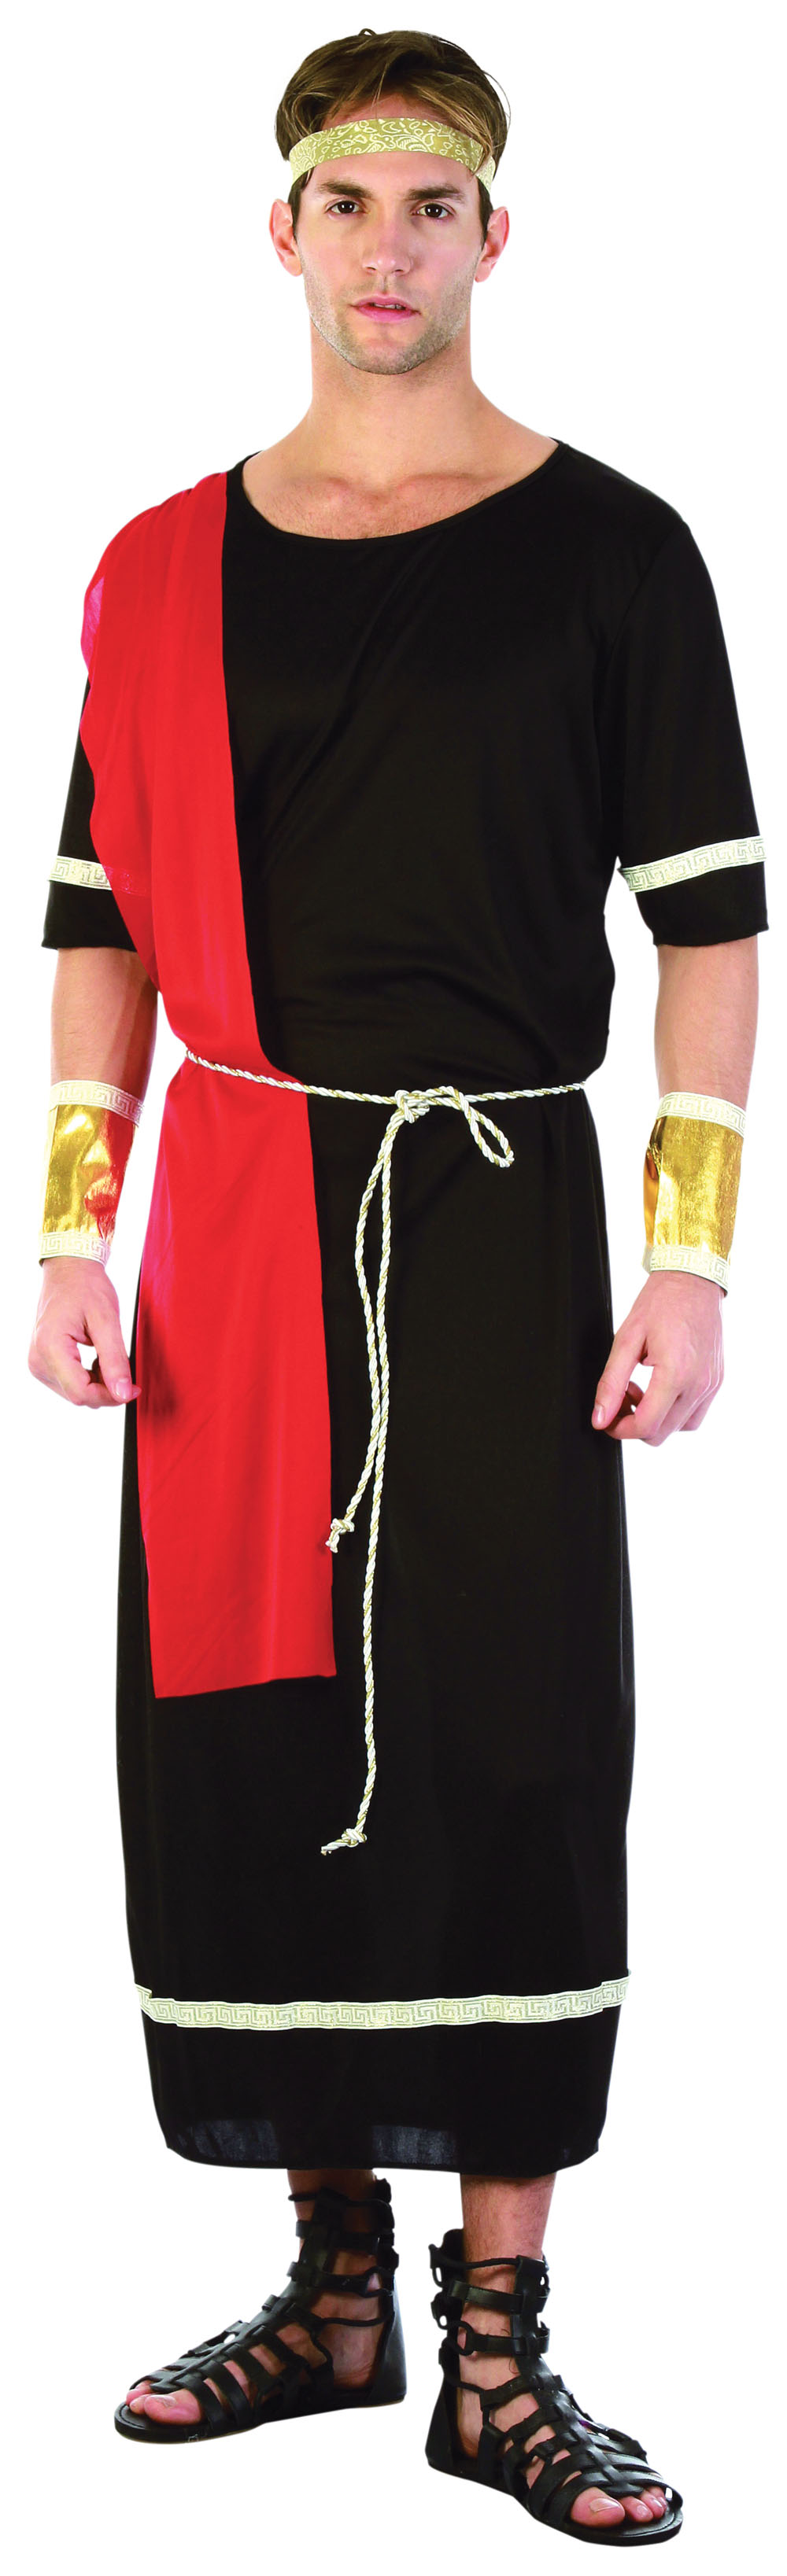 Mens Black Toga Greek God Warrior Fancy Dress Costume Historic Actor Outfit New